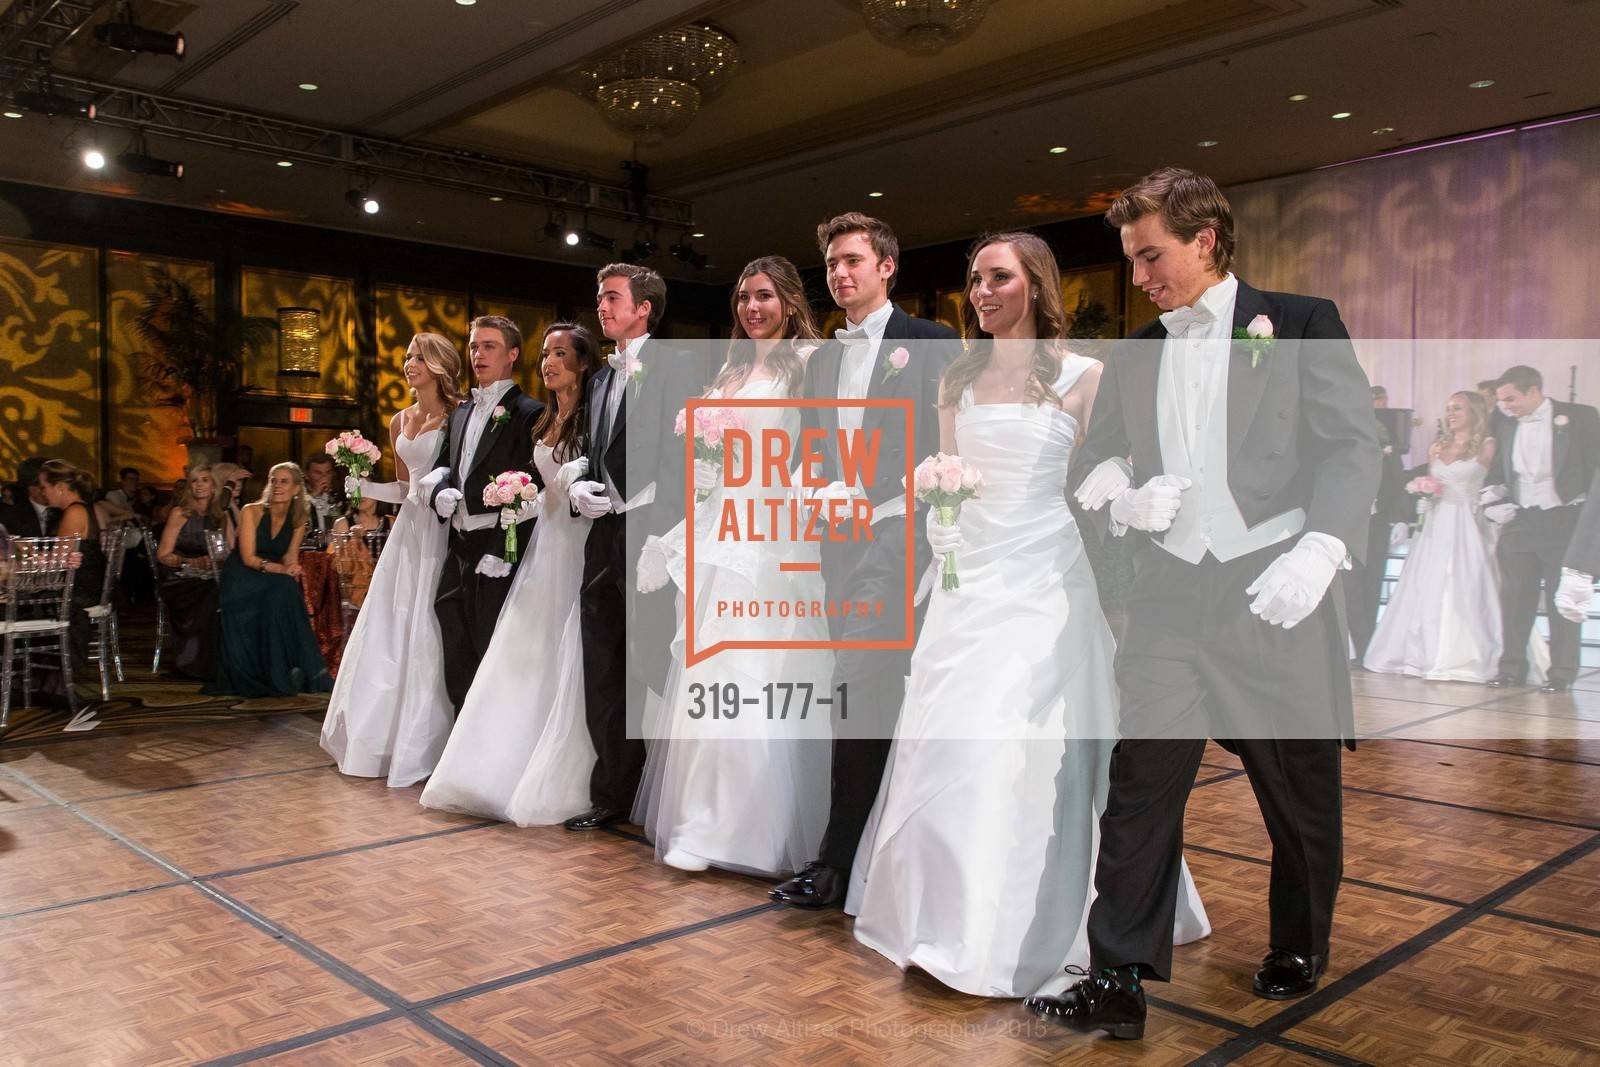 Elizabeth Grayson, Henry Griffith Callender, Solange Soward, Joseph Jennison Ladd, Diana Silvestri, Brendan William Dunlap, Connolly Grace Steigerwald, Connor Thomas King-Roberts, The 2015 San Francisco Debutante Ball, The Westin St. Francis San Francisco Union Square. 335 Powell St, June 20th, 2015,Drew Altizer, Drew Altizer Photography, full-service agency, private events, San Francisco photographer, photographer california